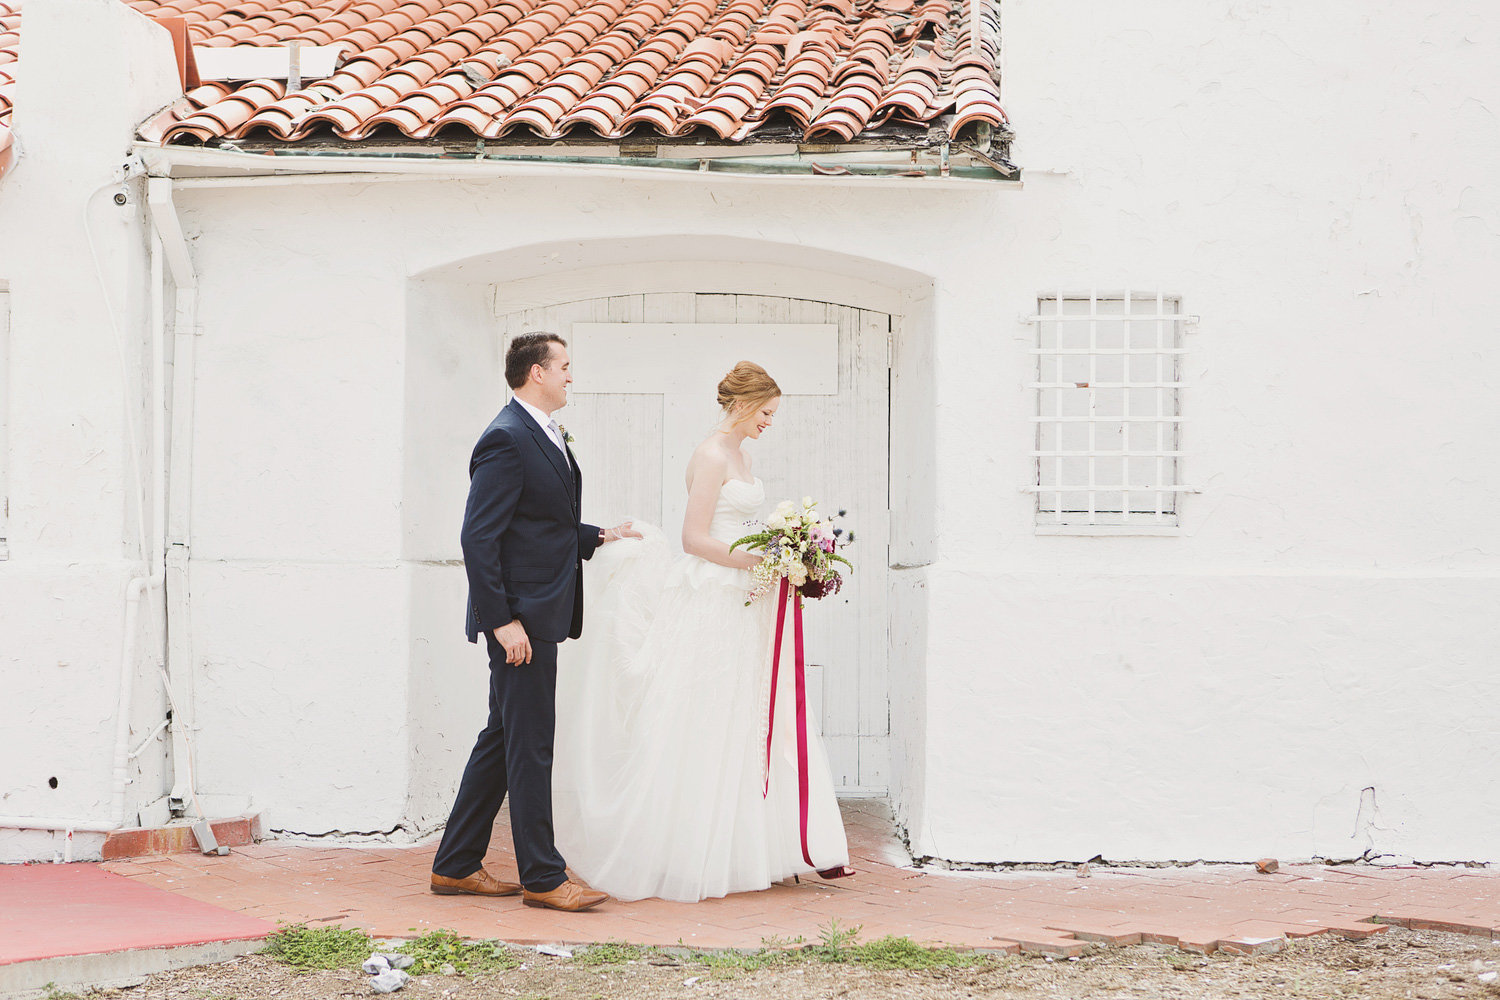 Bride and groom walking at San Clemente wedding